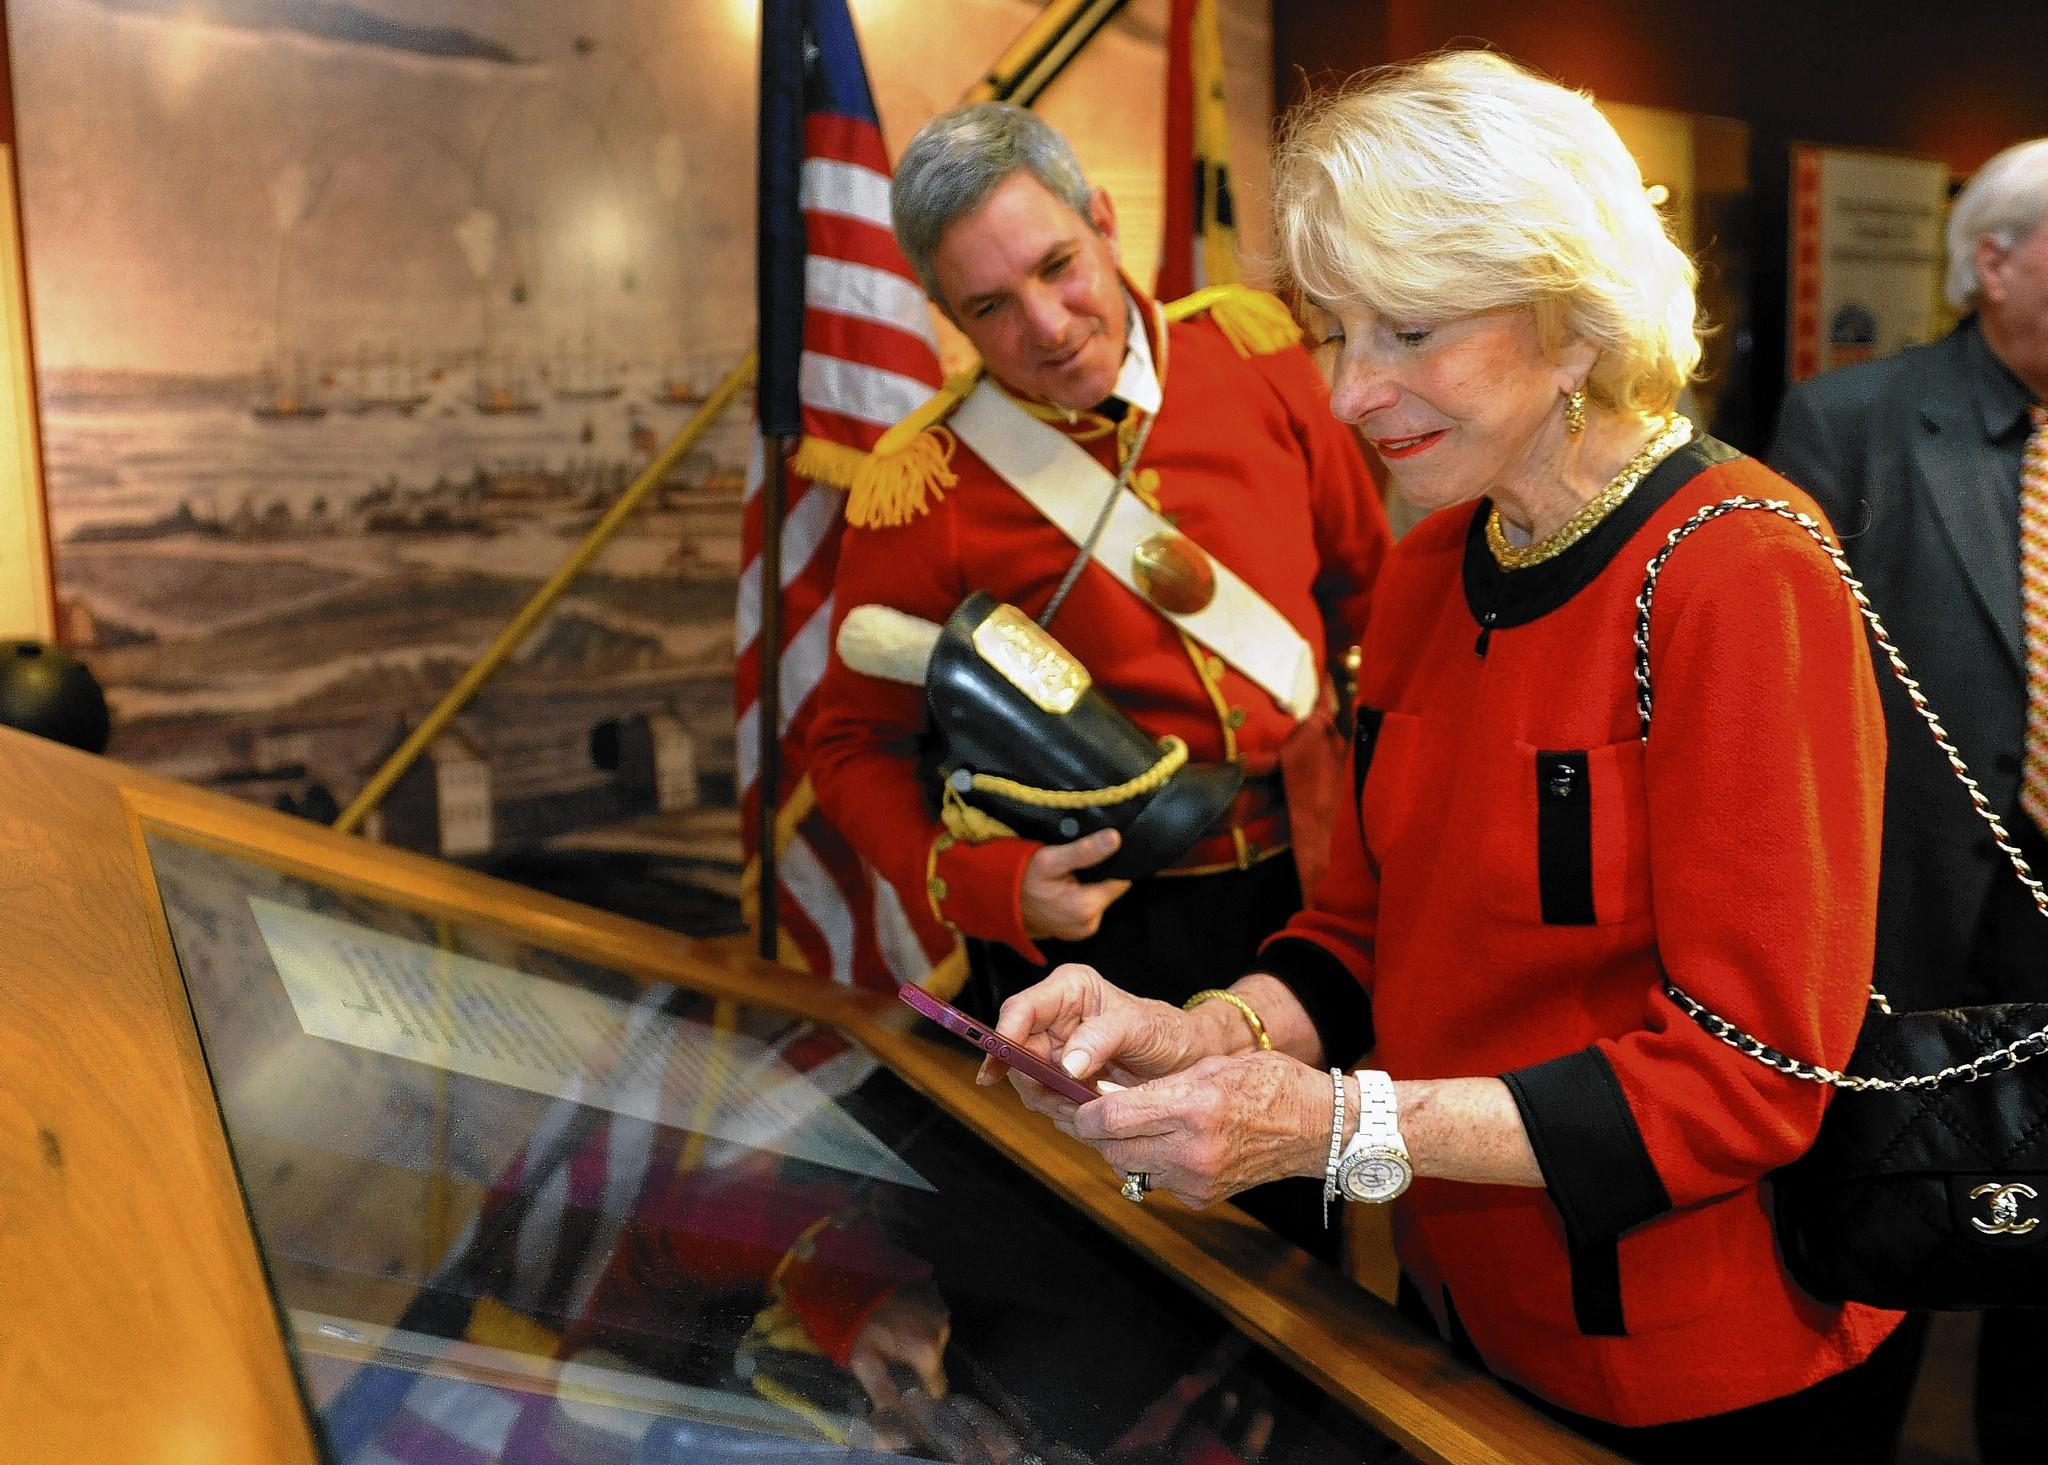 Jayne H. Plank, a Trustee of the Maryland Historical Society, takes a photo of the original Star Spangled Banner which is on display at the Maryland Historical Society.